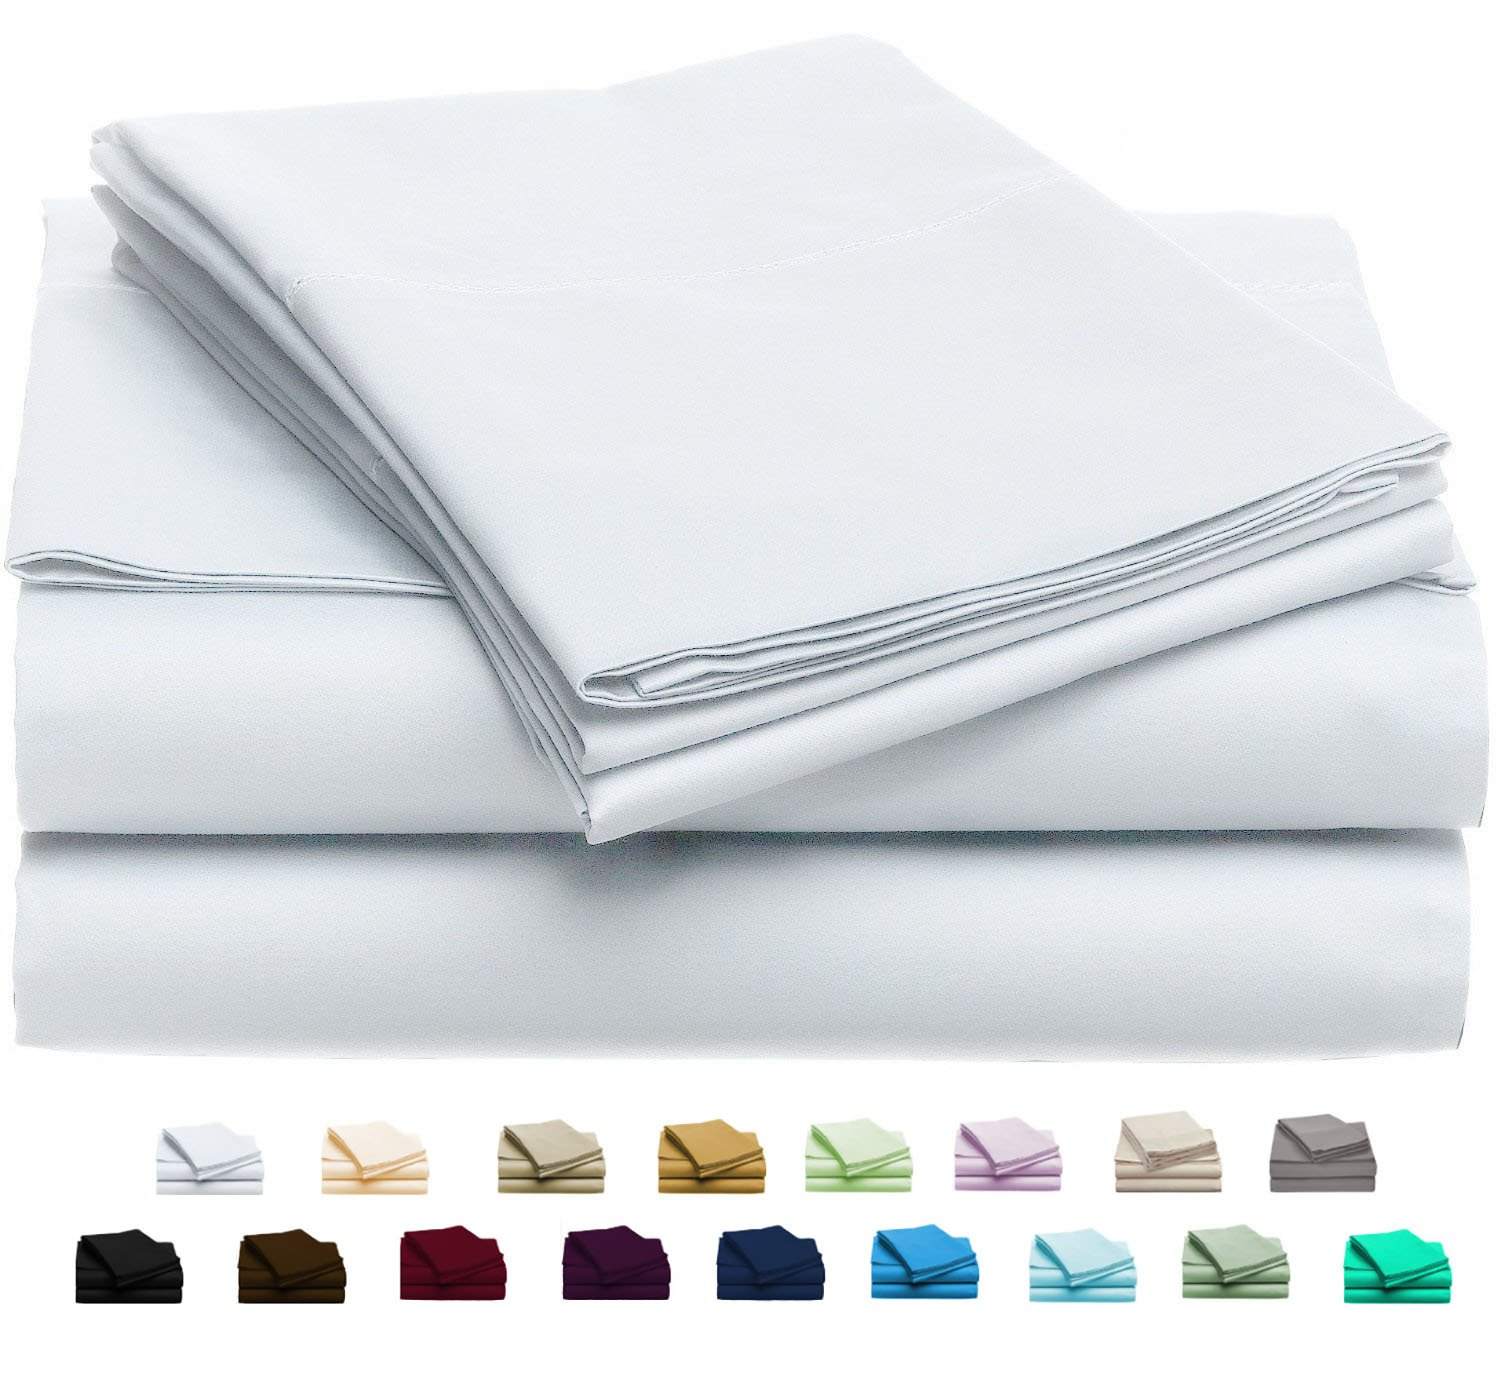 Luxury Home Super-Soft 1600 Series Double-Brushed 6 Pcs Bed Sheets Set (King, White) by Luxury Home (Image #1)